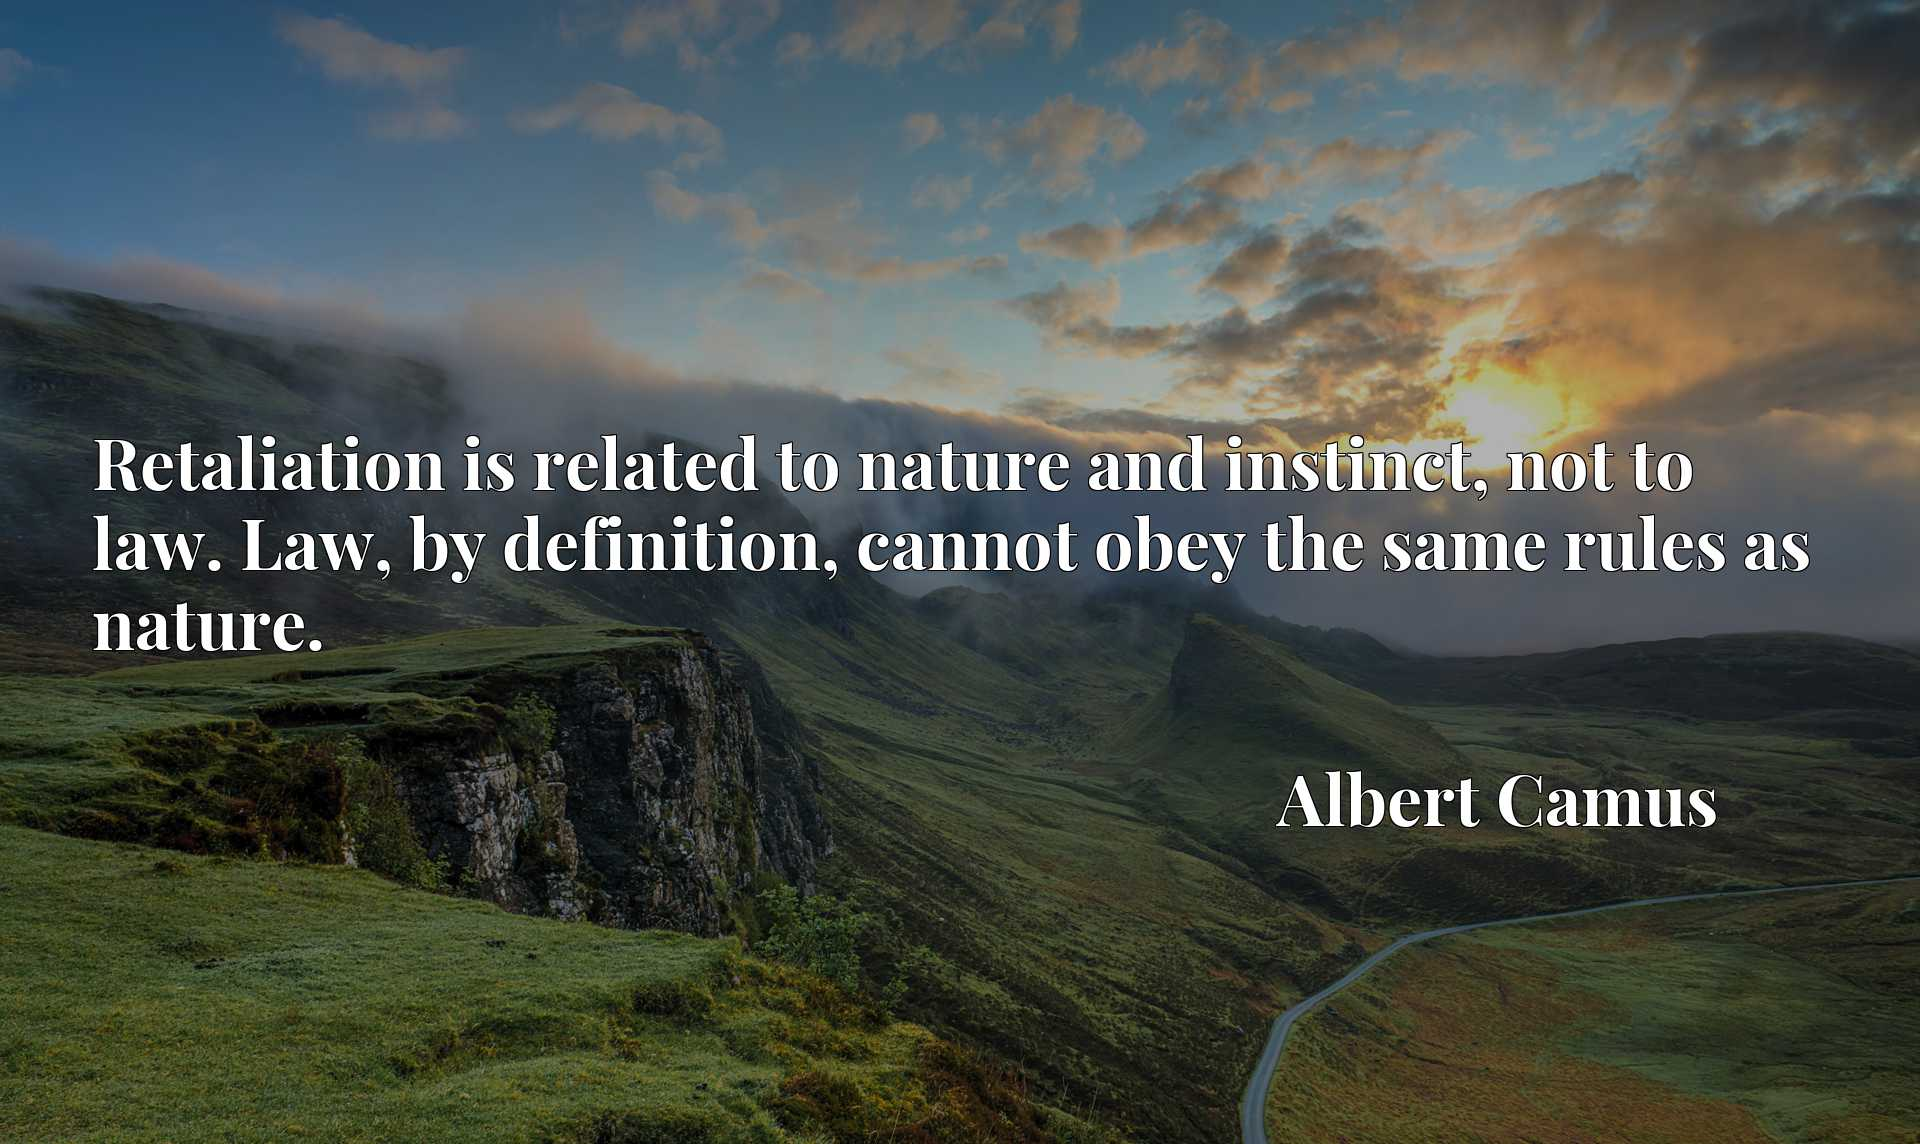 Retaliation is related to nature and instinct, not to law. Law, by definition, cannot obey the same rules as nature.